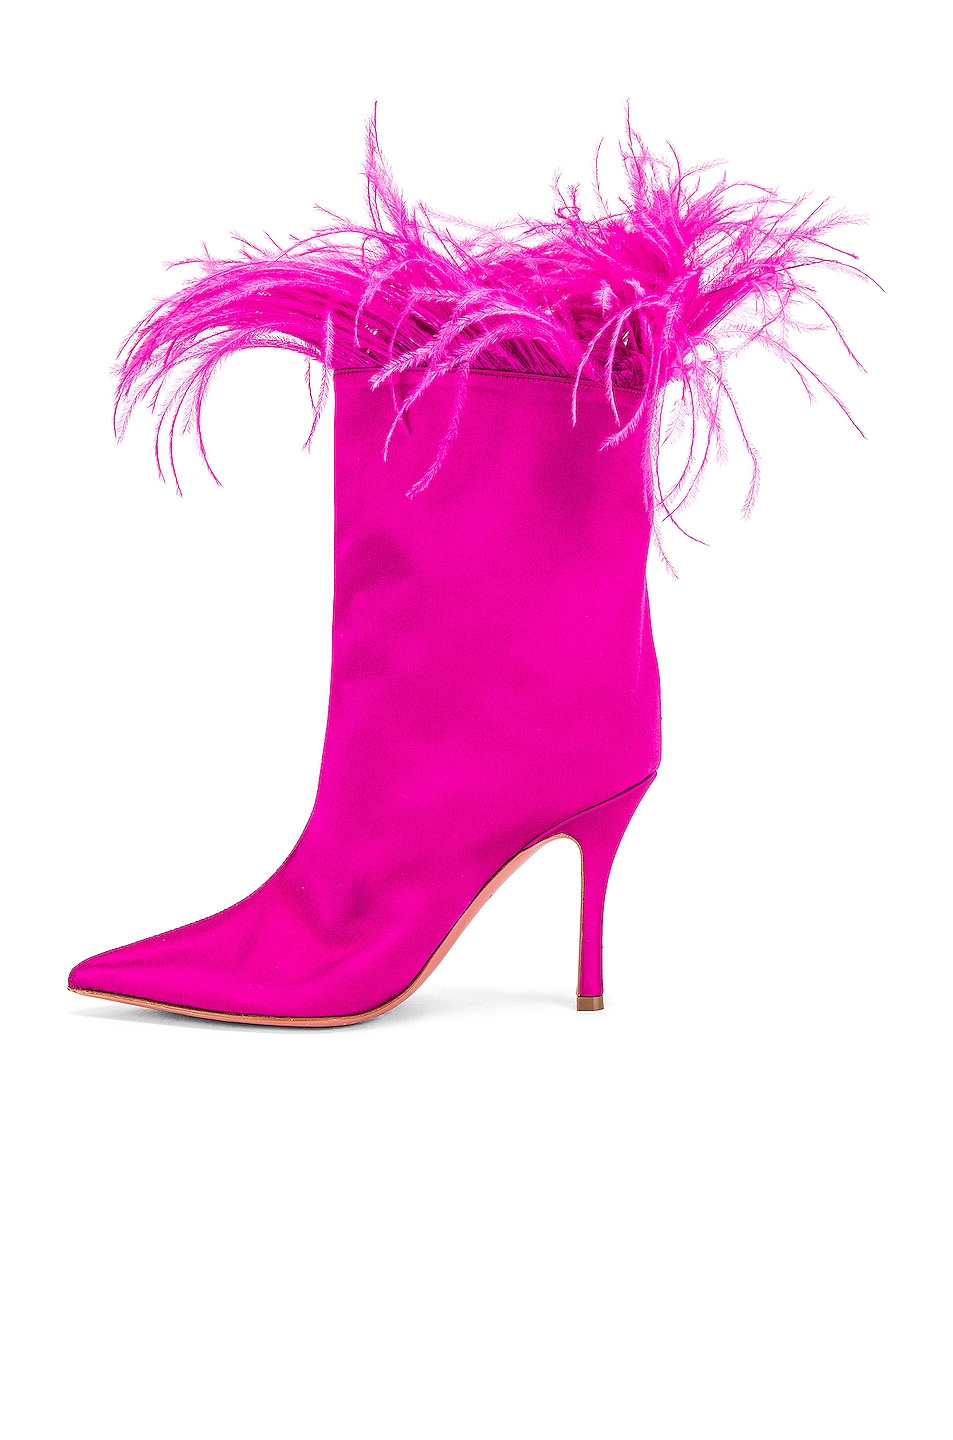 Image 5 of AMINA MUADDI Nakia Plume Satin Boot in Fuchsia Satin